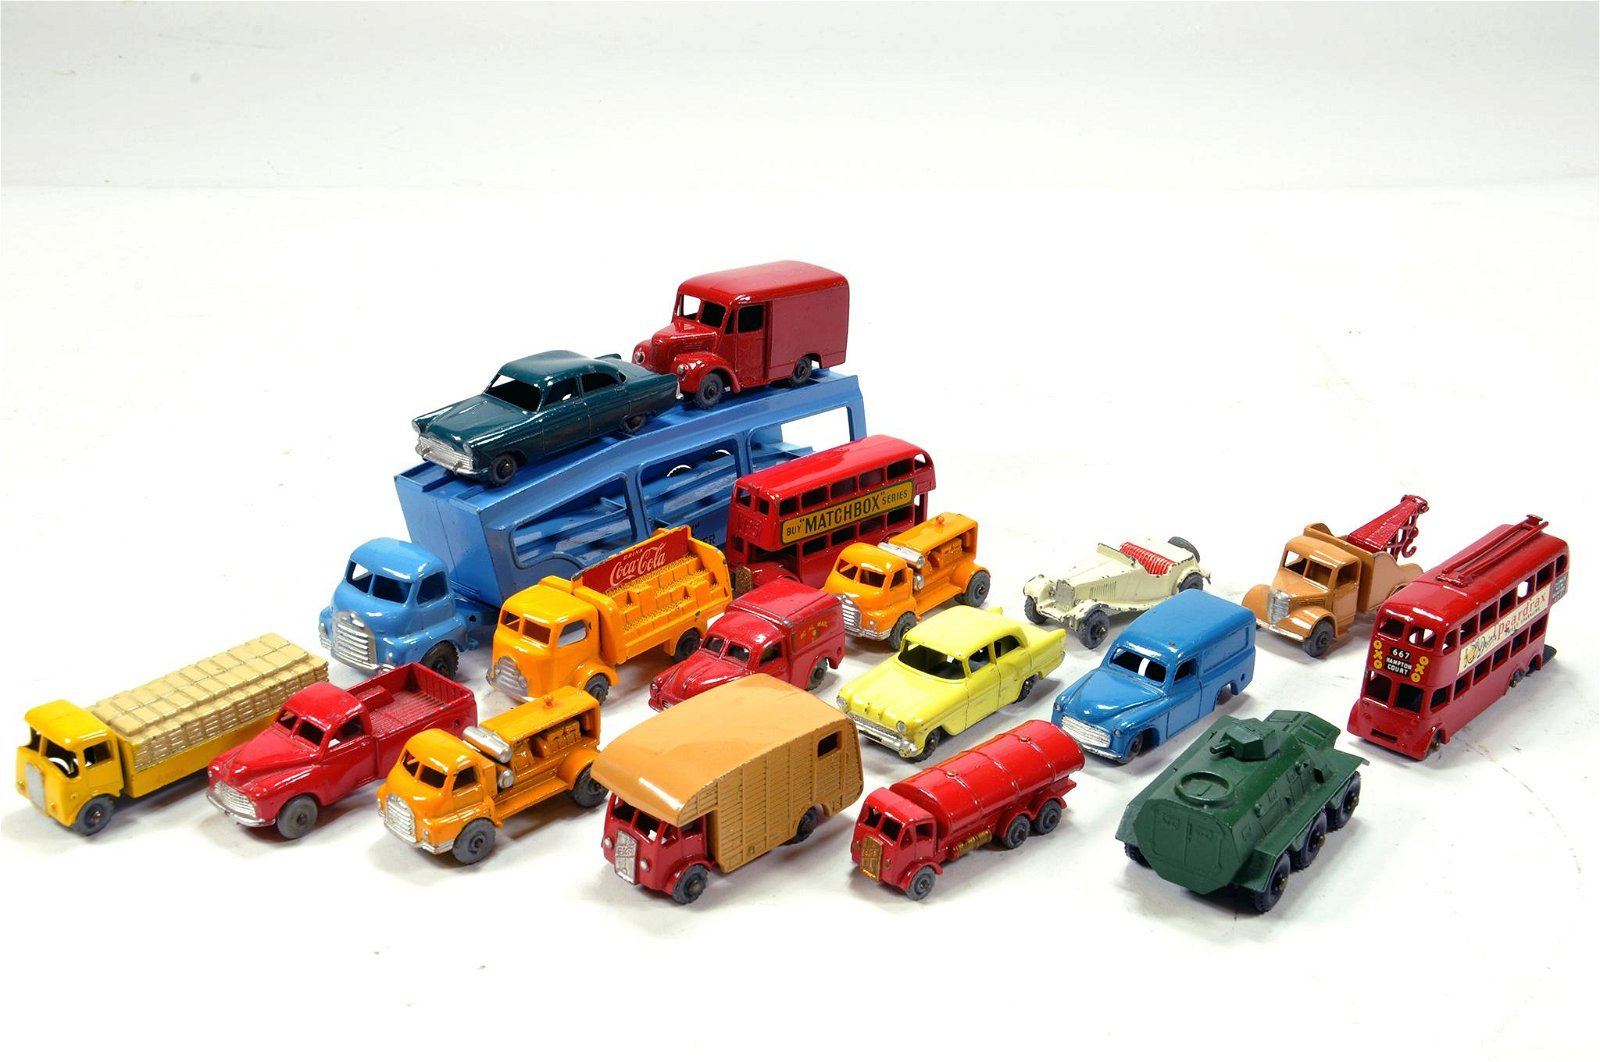 Early issue Matchbox diecast group comprising various